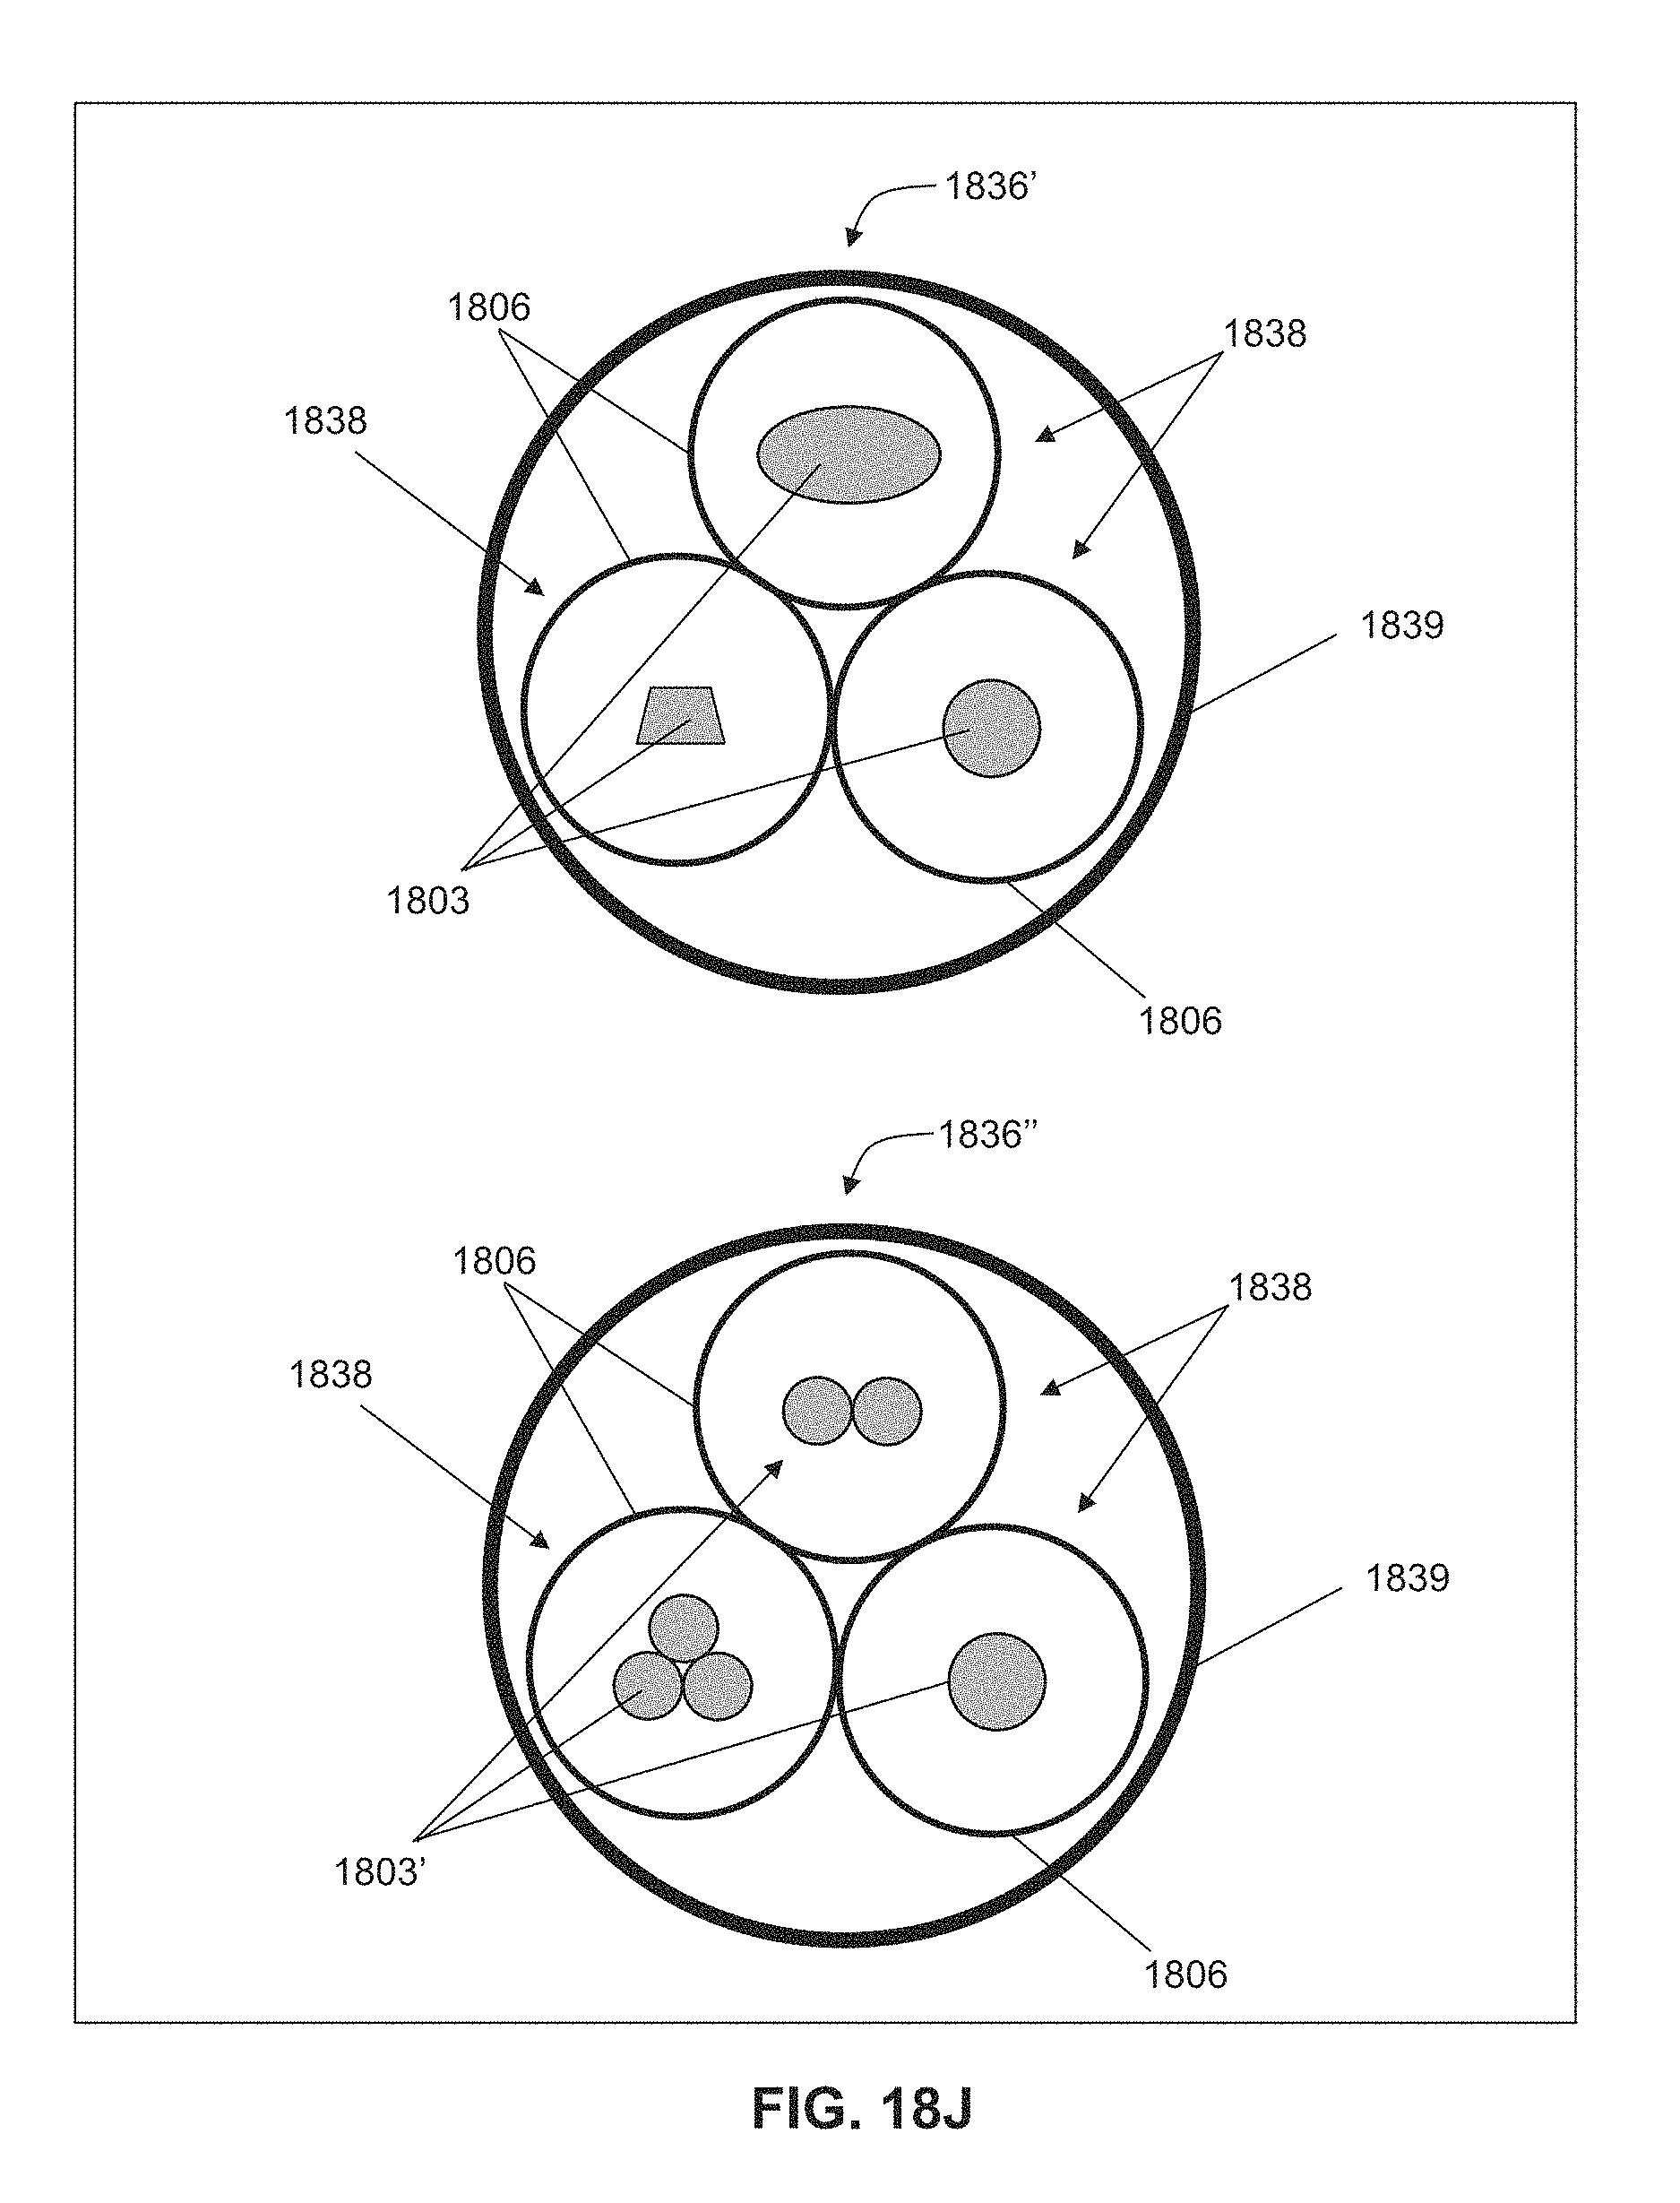 Us9853342b2 dielectric transmission medium connector and methods for use therewith patents